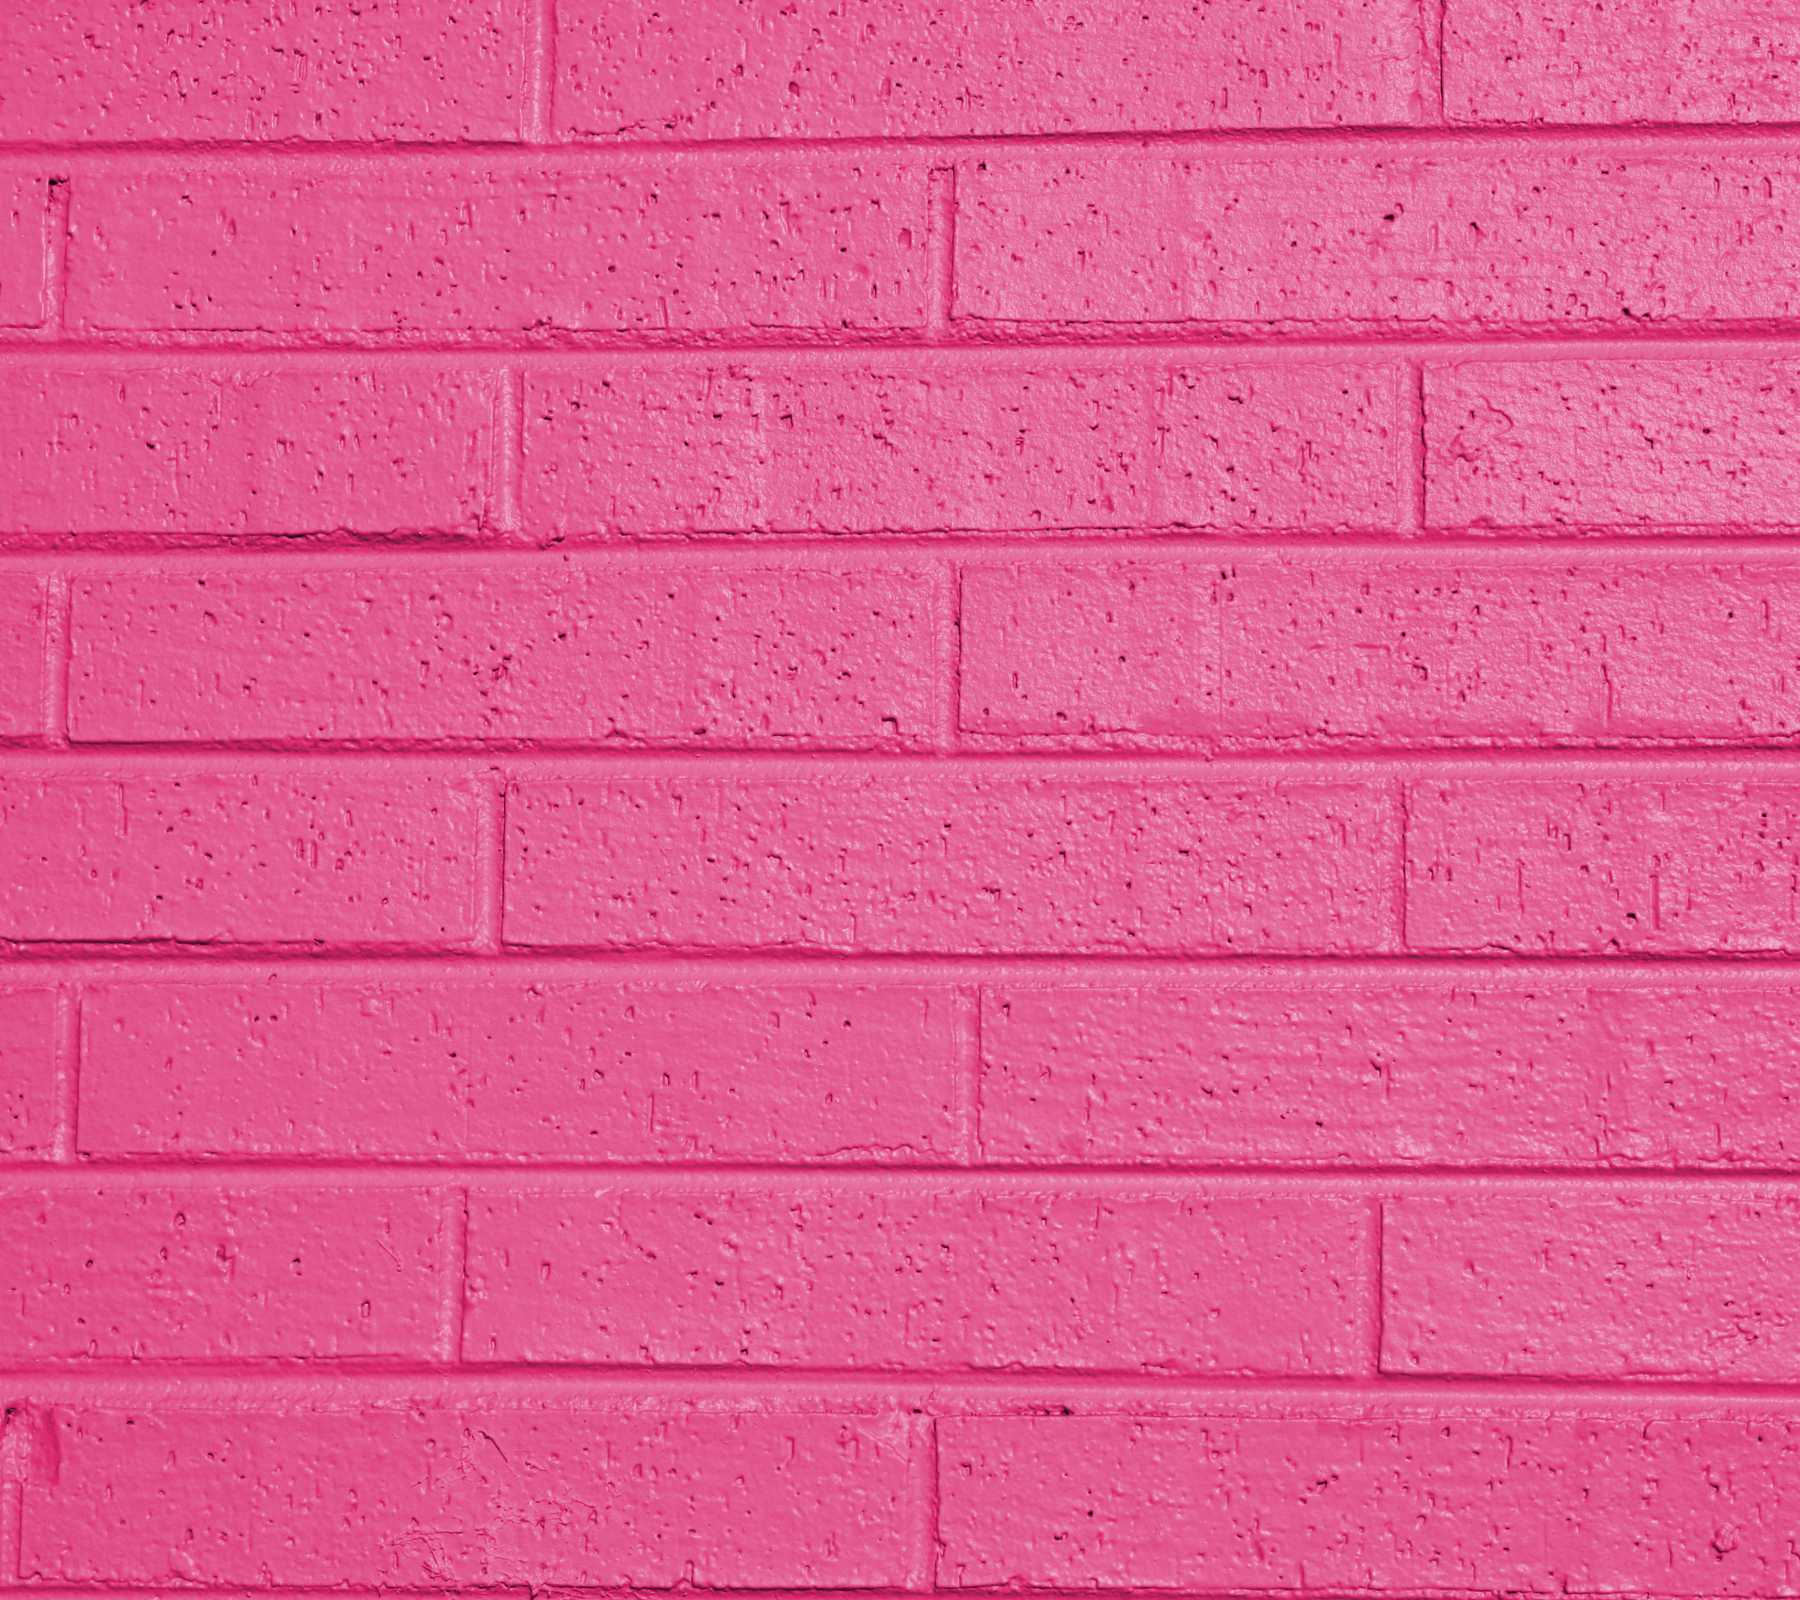 Solid Neon Pink Wallpaper Cool Hot Backgrounds